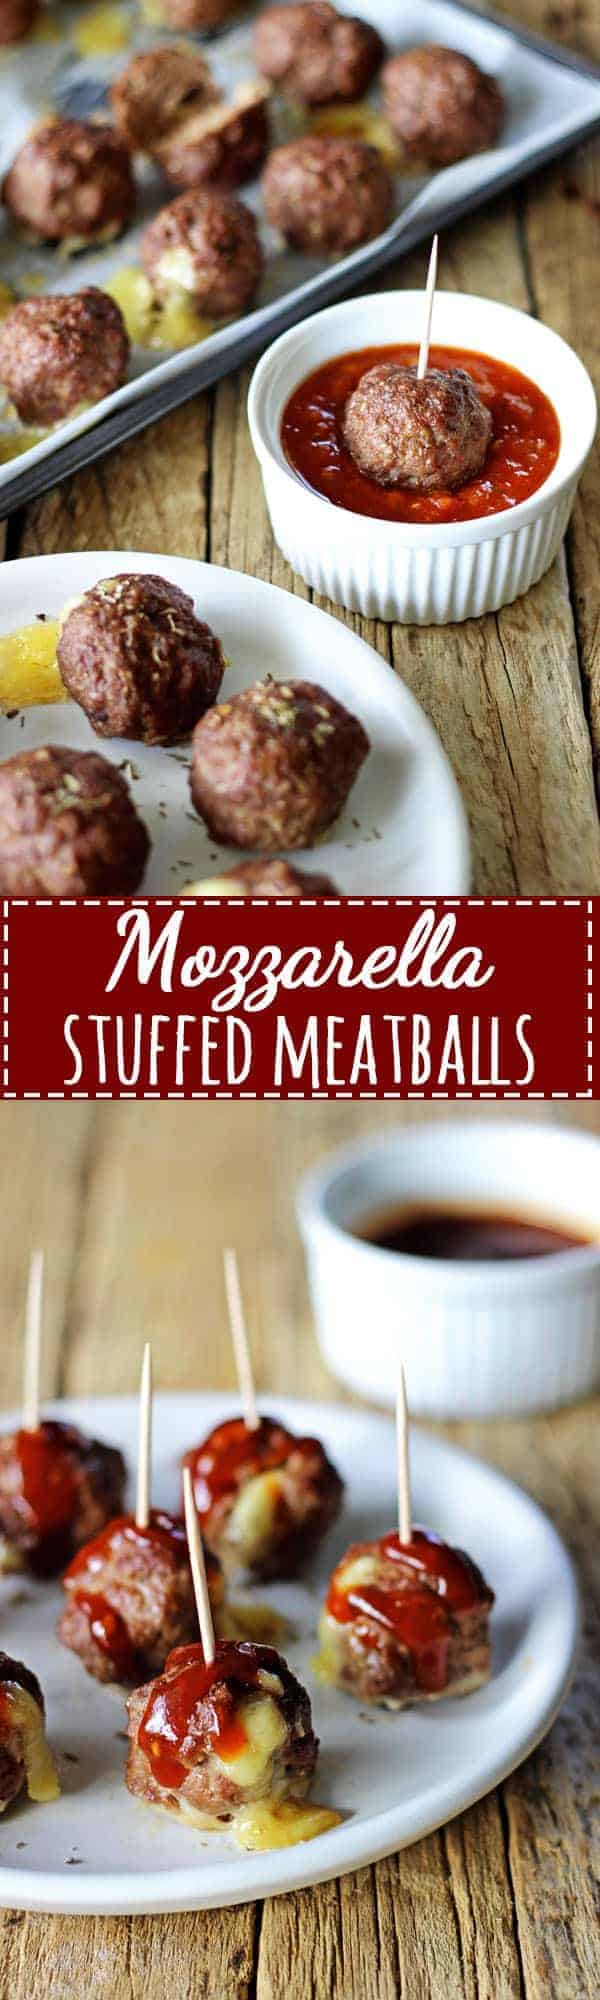 Mozzarella stuffed meatballs - the perfect quick dinner or make them mini, stick them on toothpicks and serve as an appetizer with BBQ or marinara sauce! | thekiwicountrygirl.com